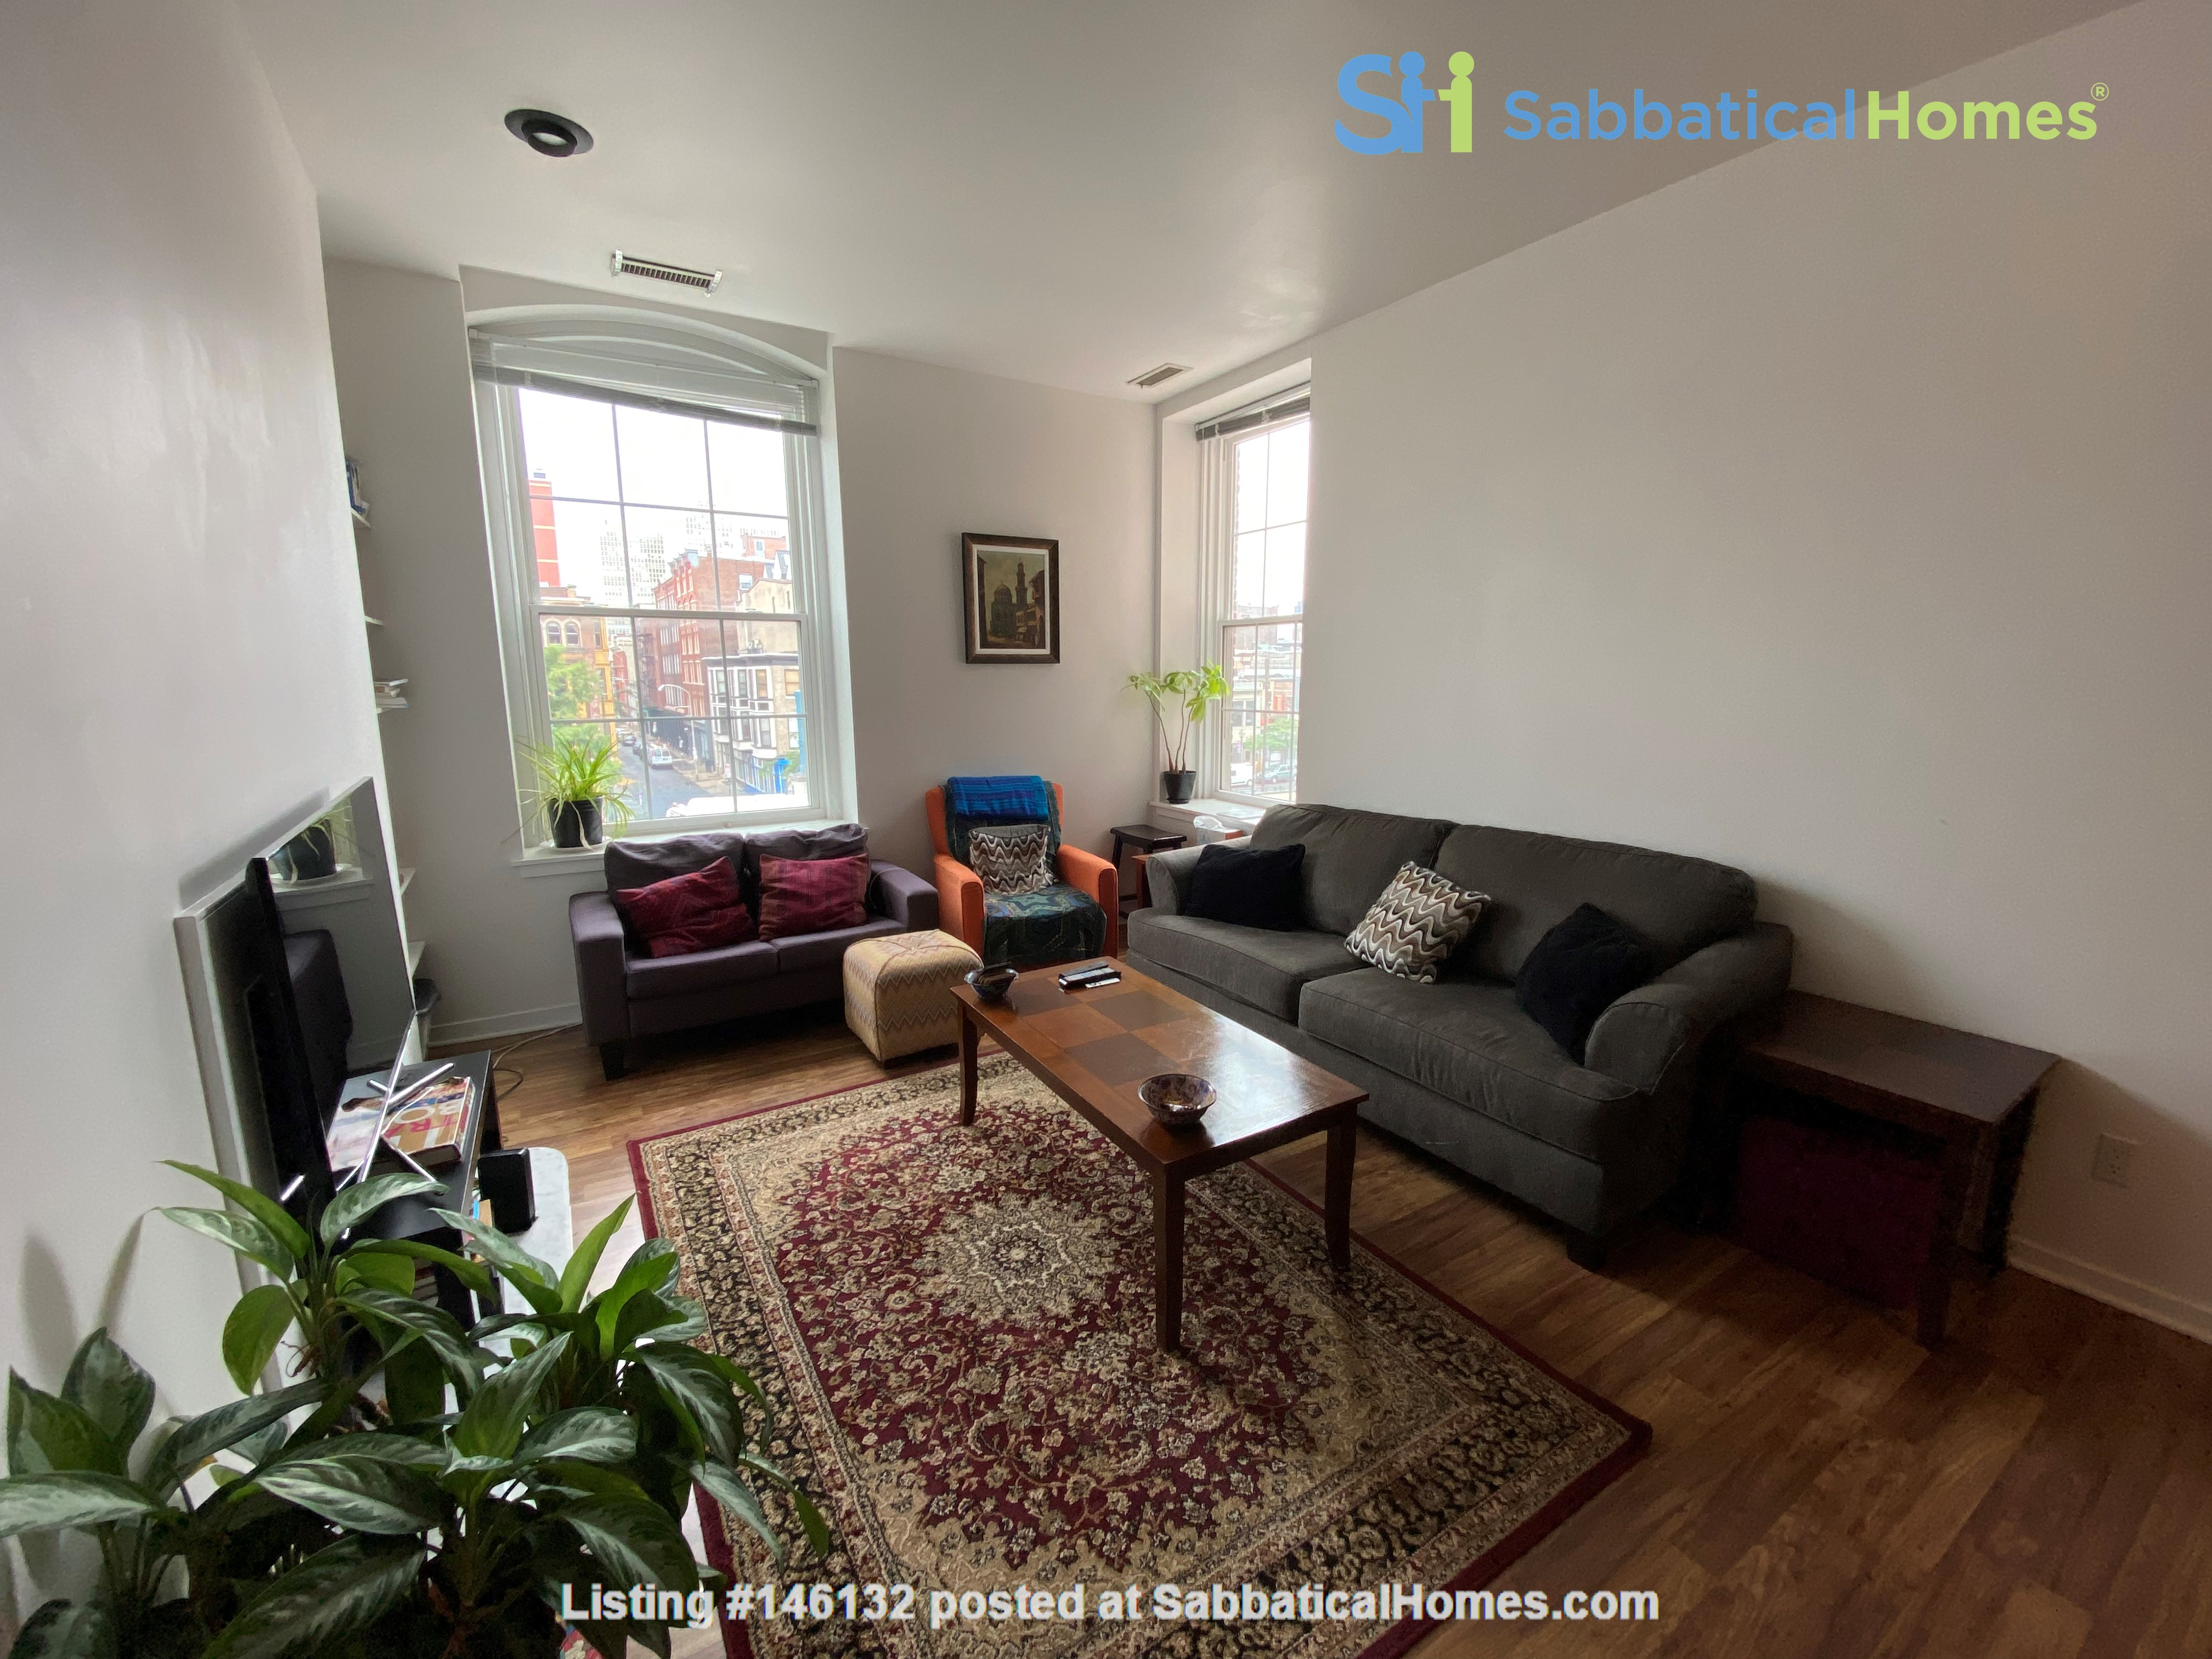 Sunny and bright old city 2 bedroom - near everything! Home Rental in Philadelphia 1